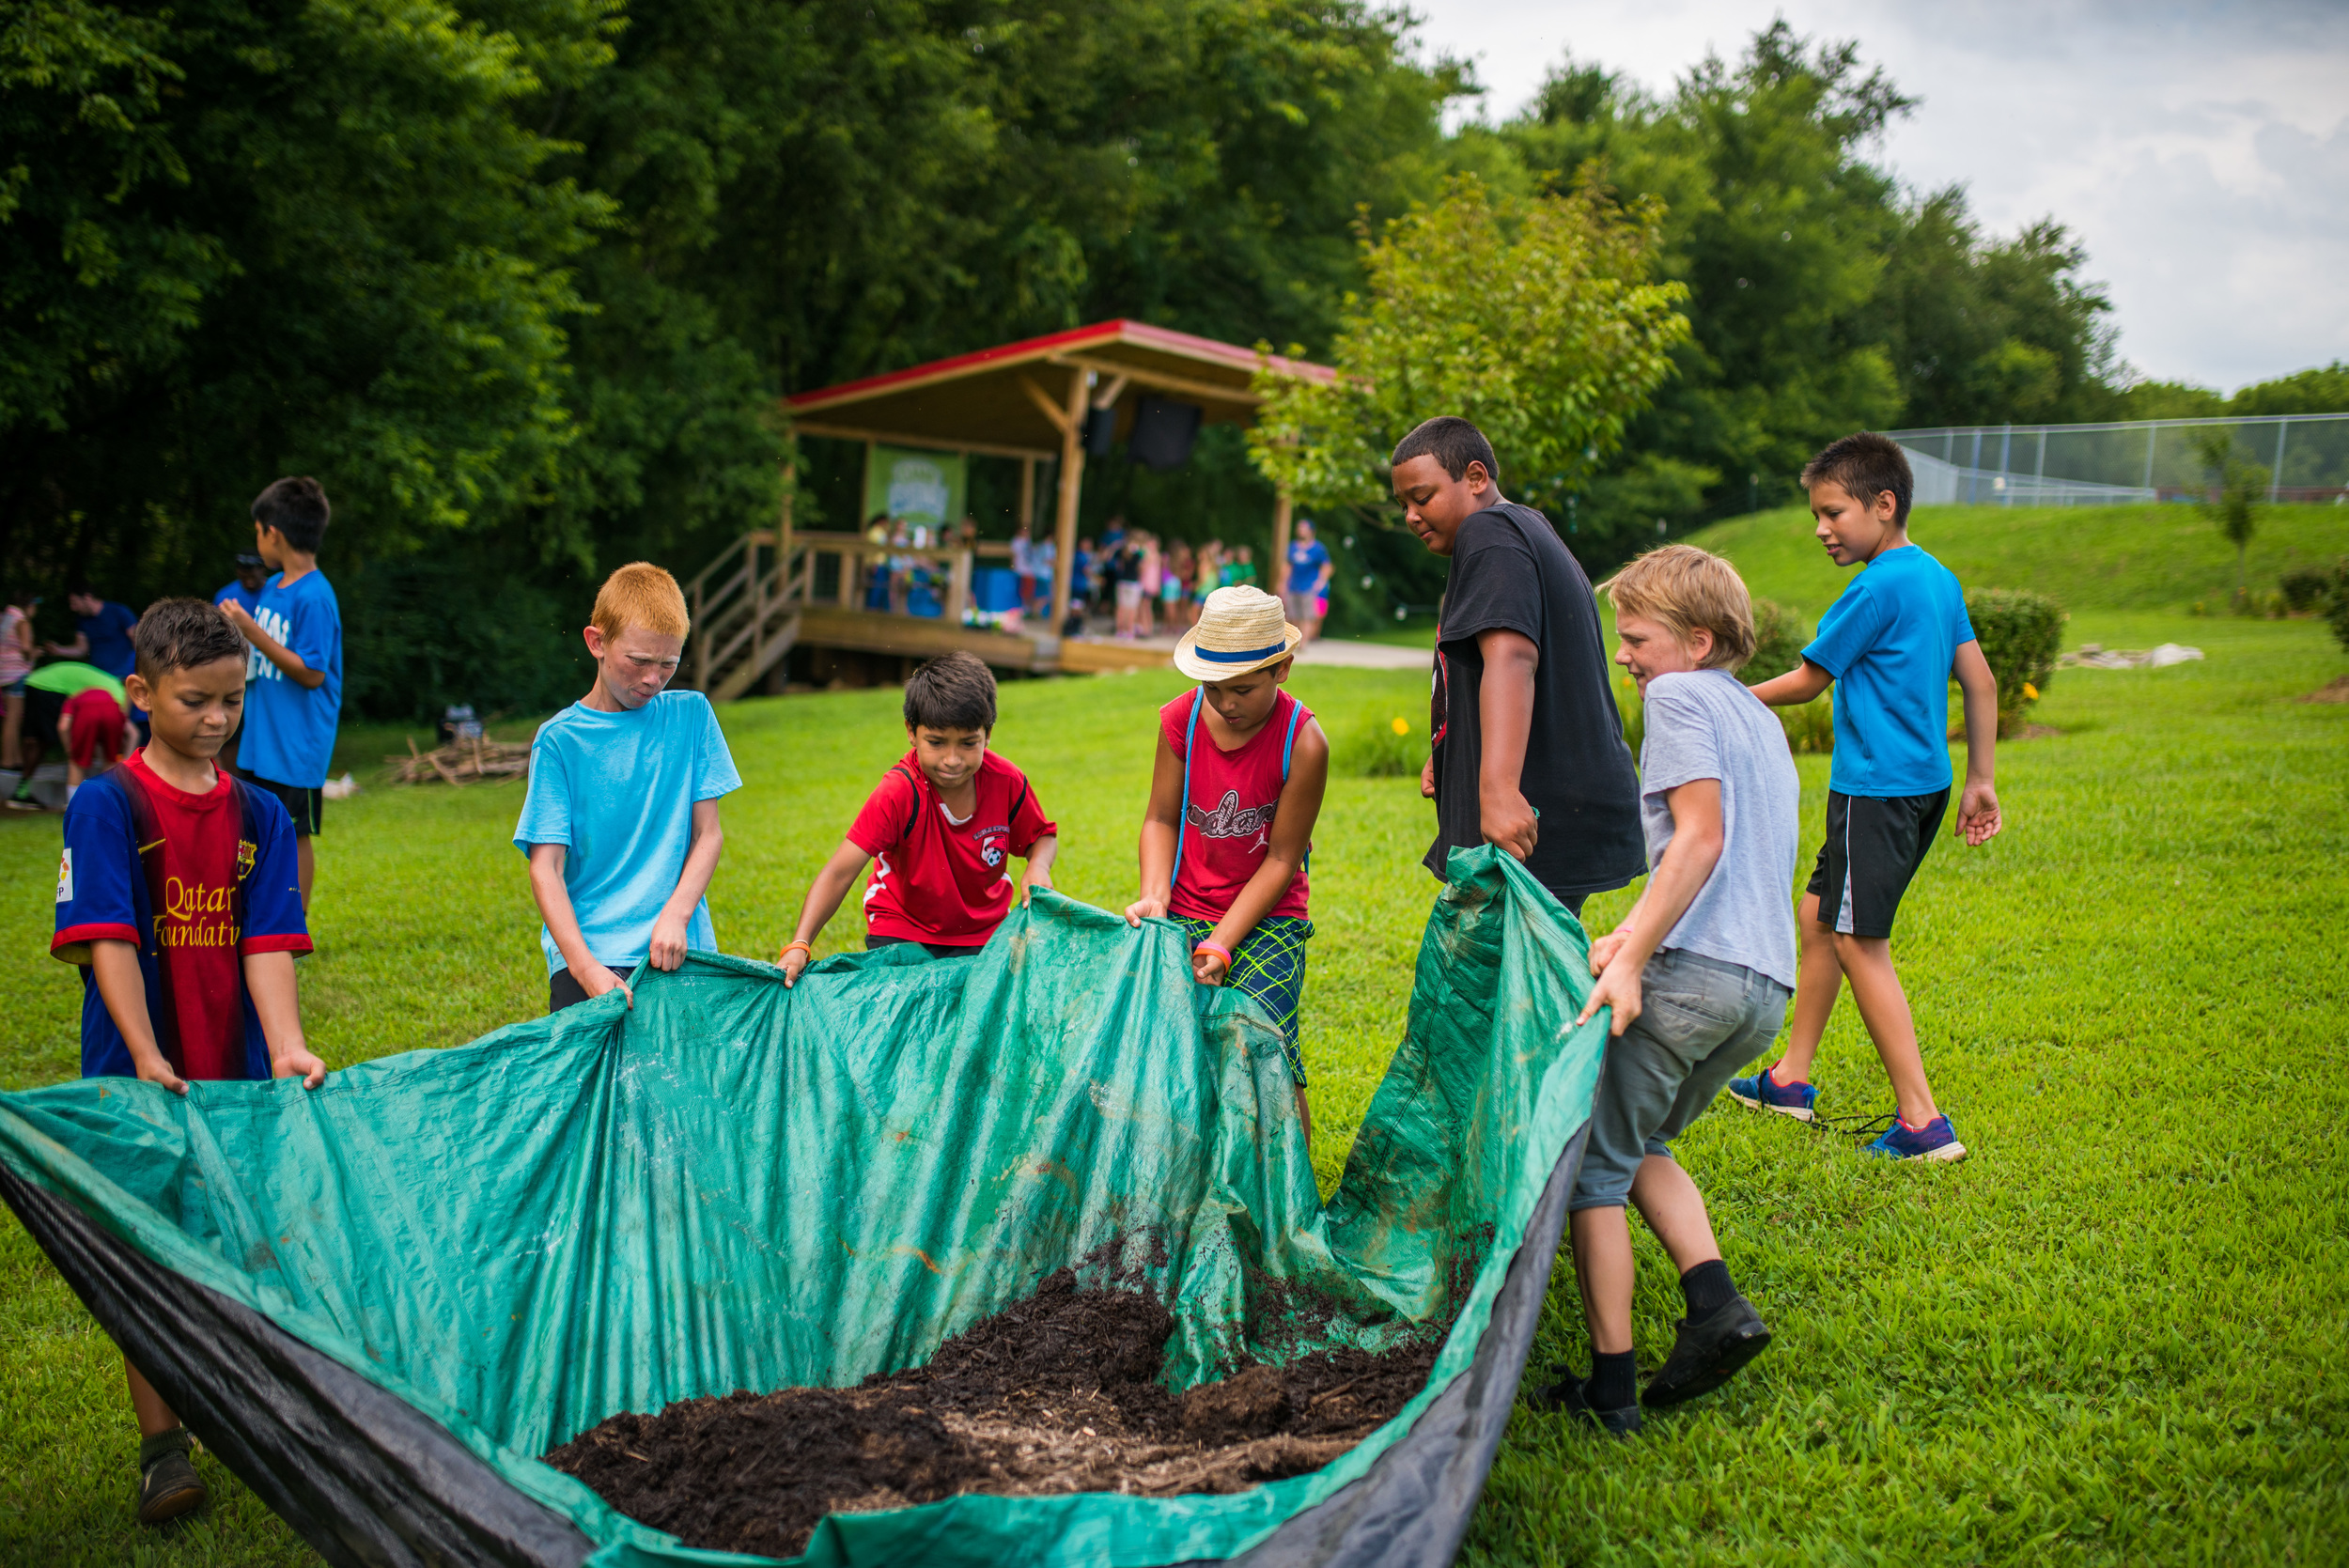 The boys loved the challenge of figuring out how to move this mulch and get it dumped into a nearby brush pile. Not a single one of them is able to move this pile on their own. They need one another, and knowing that we need one another is a great lesson. Life is heavy without the strength and support of your friends, and here in these small activities they are tutored into a healthy mindset - to depend on one another is strength not weakness.